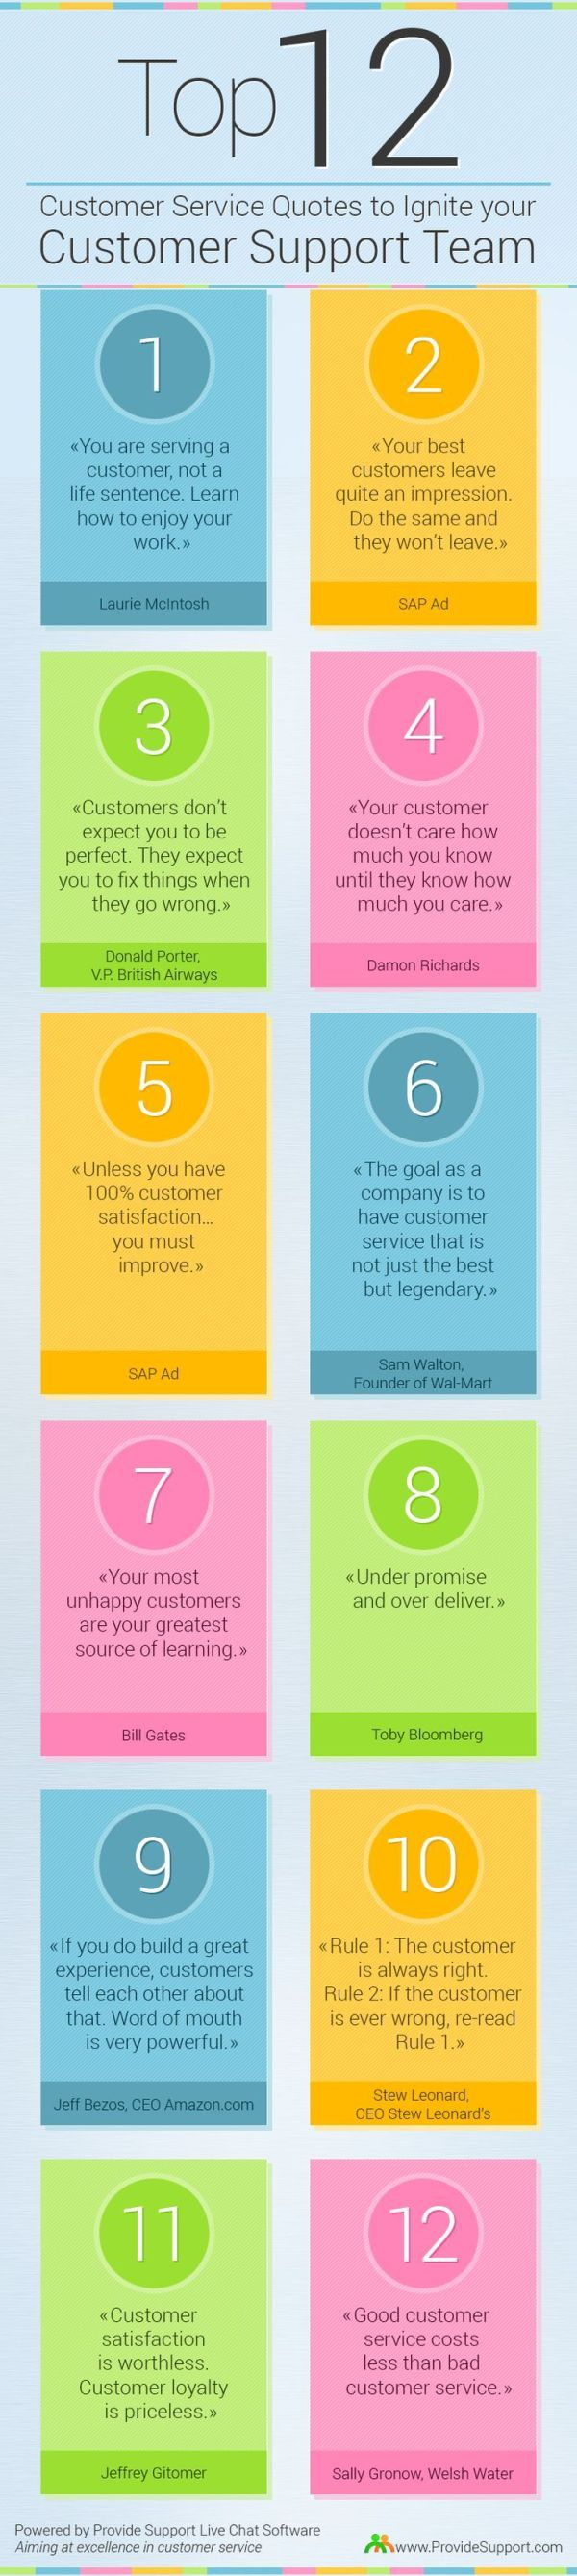 Top 12 Customer Service Quotes